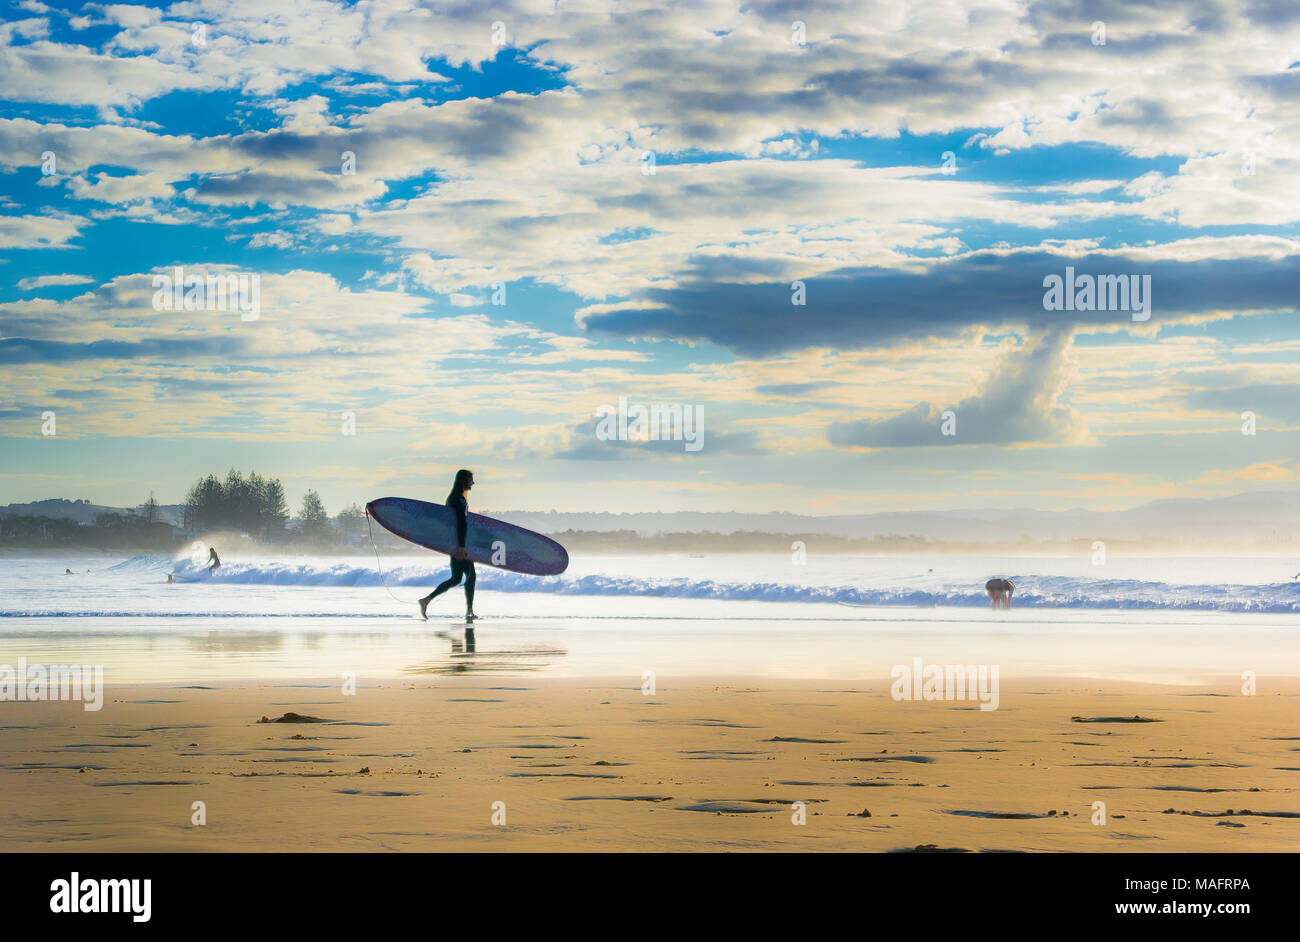 Surfer entering the surf at The Pass, Byron Bay, New South Wales, Australia - Stock Image